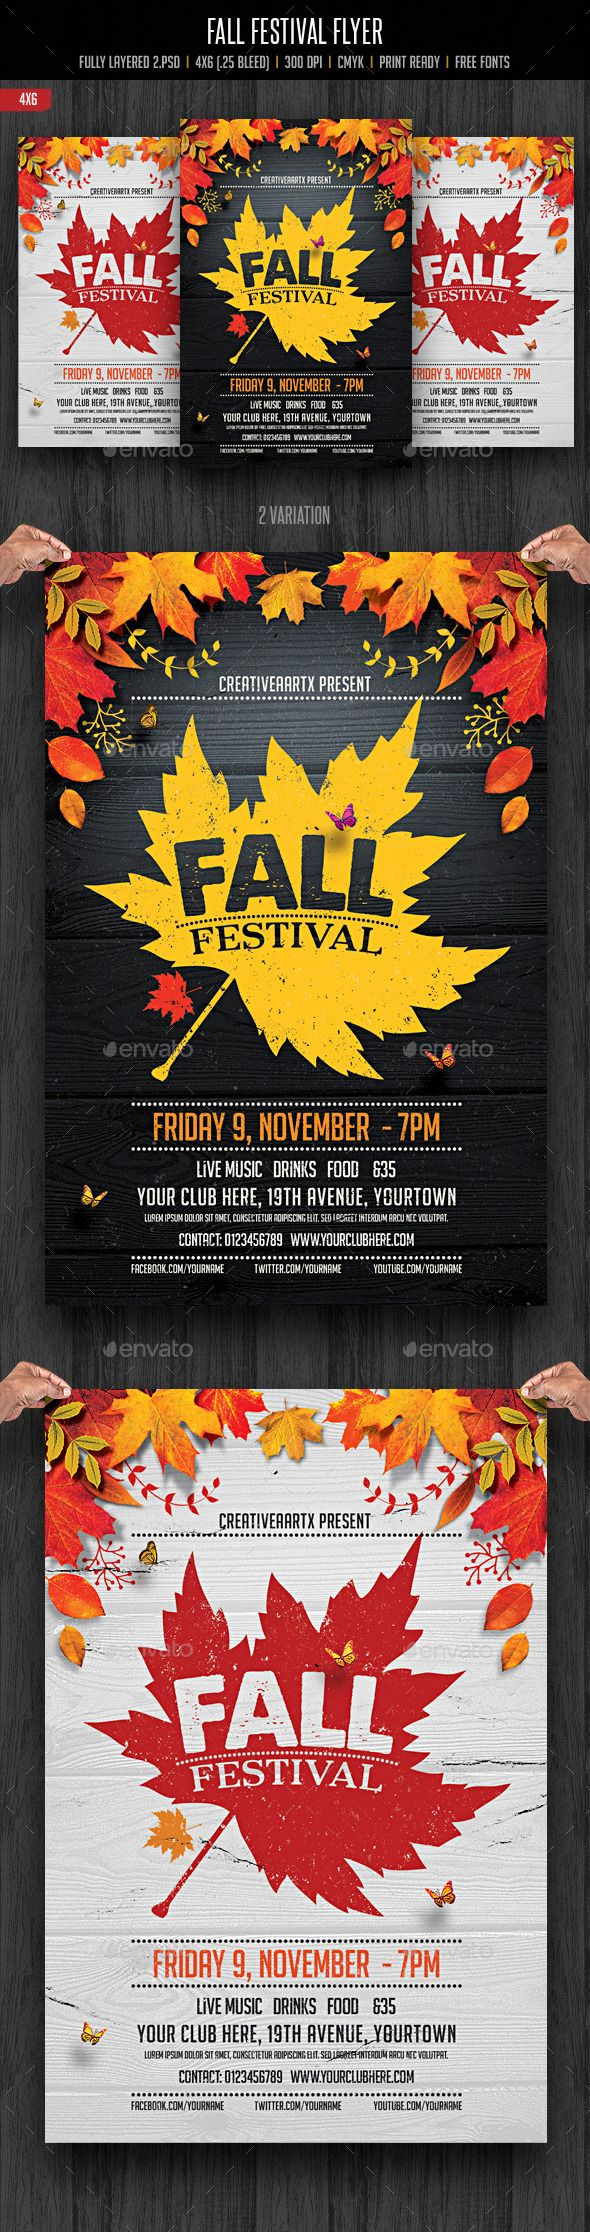 Poster design event - Fall Festival Flyer Festival Downloadposter Ideasposter Designsevent